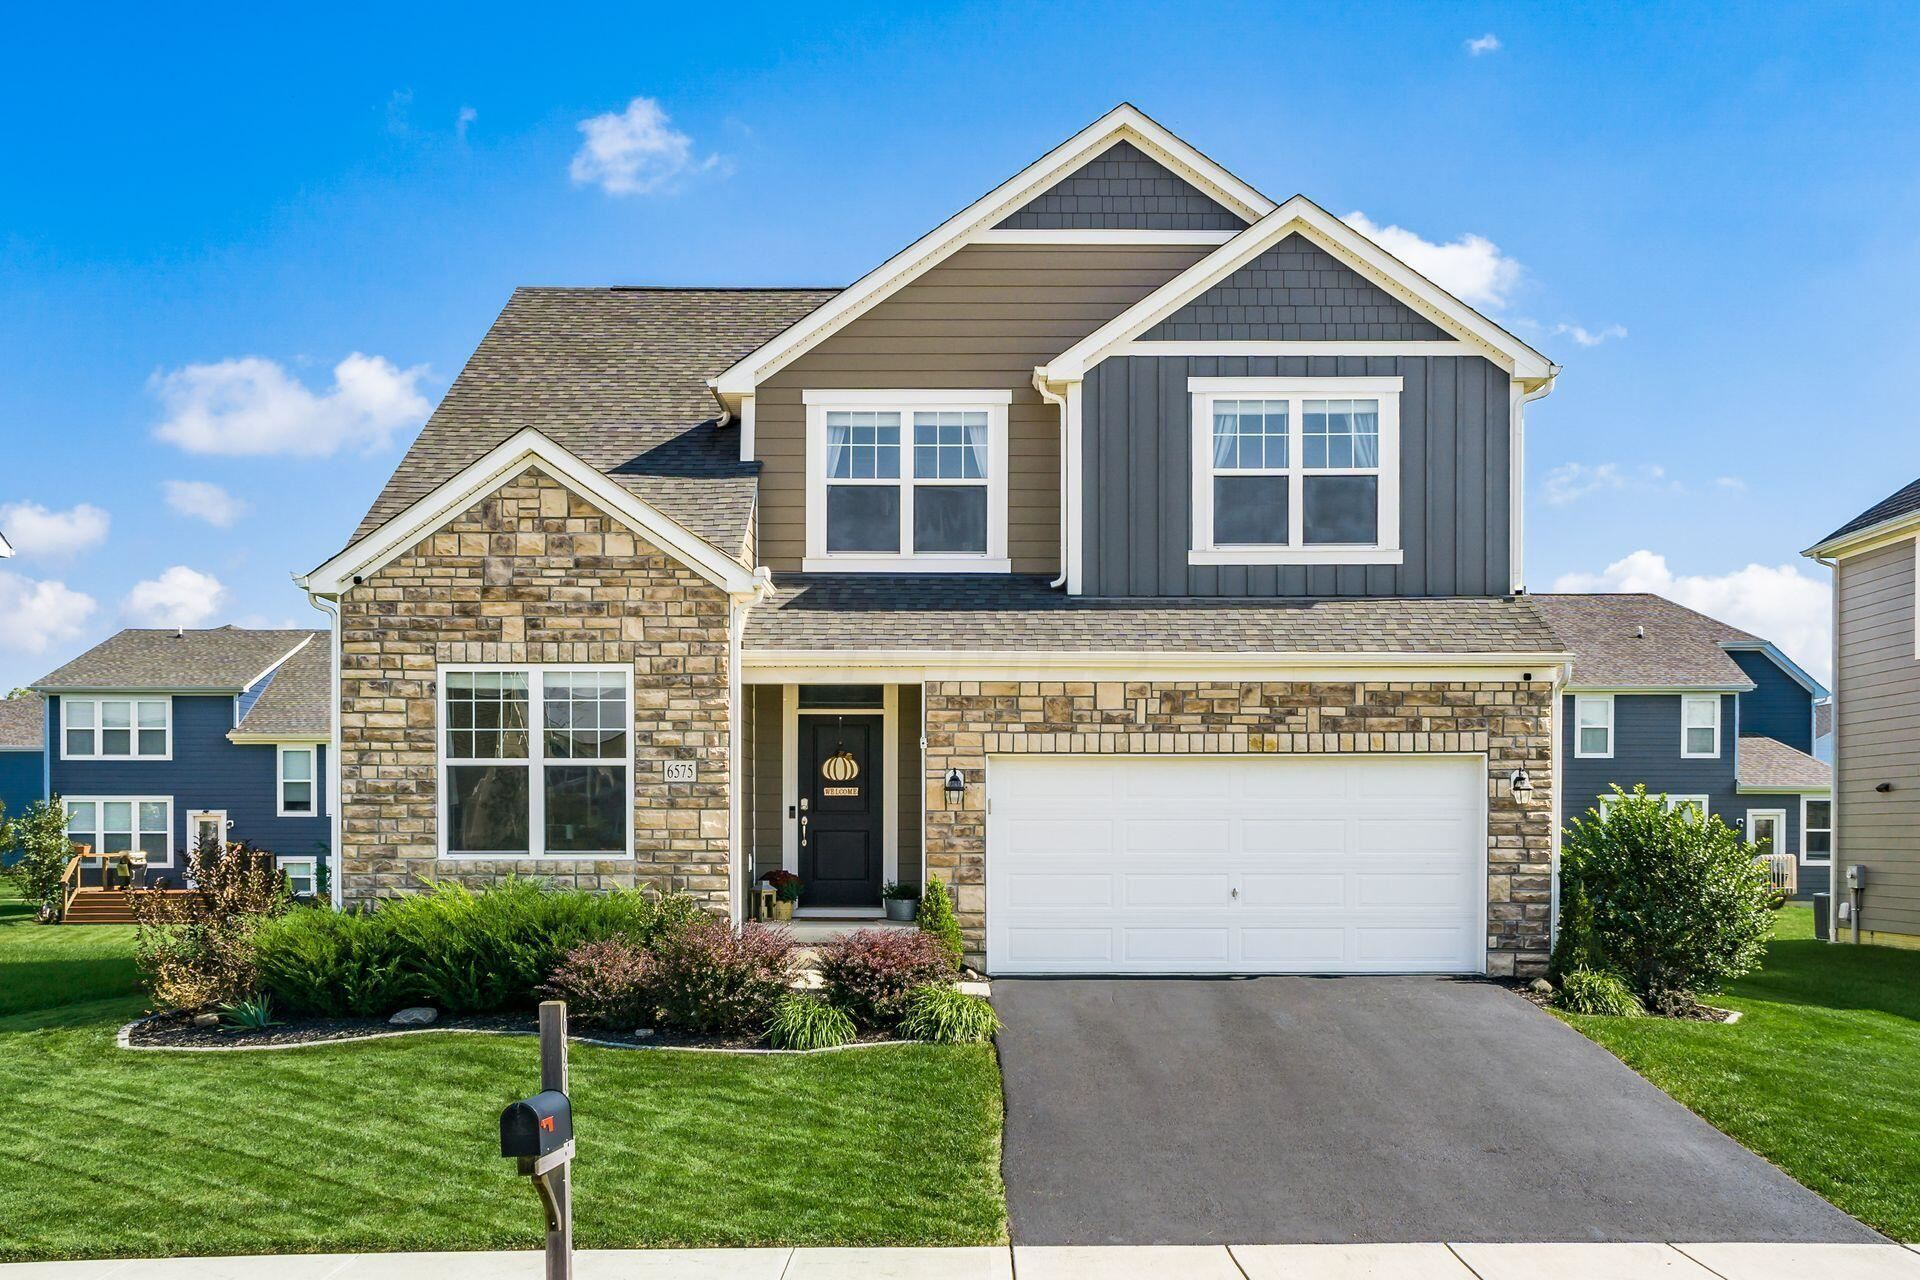 Photo of 6575 Valley Oak Drive, Powell, OH 43065 (MLS # 221040398)